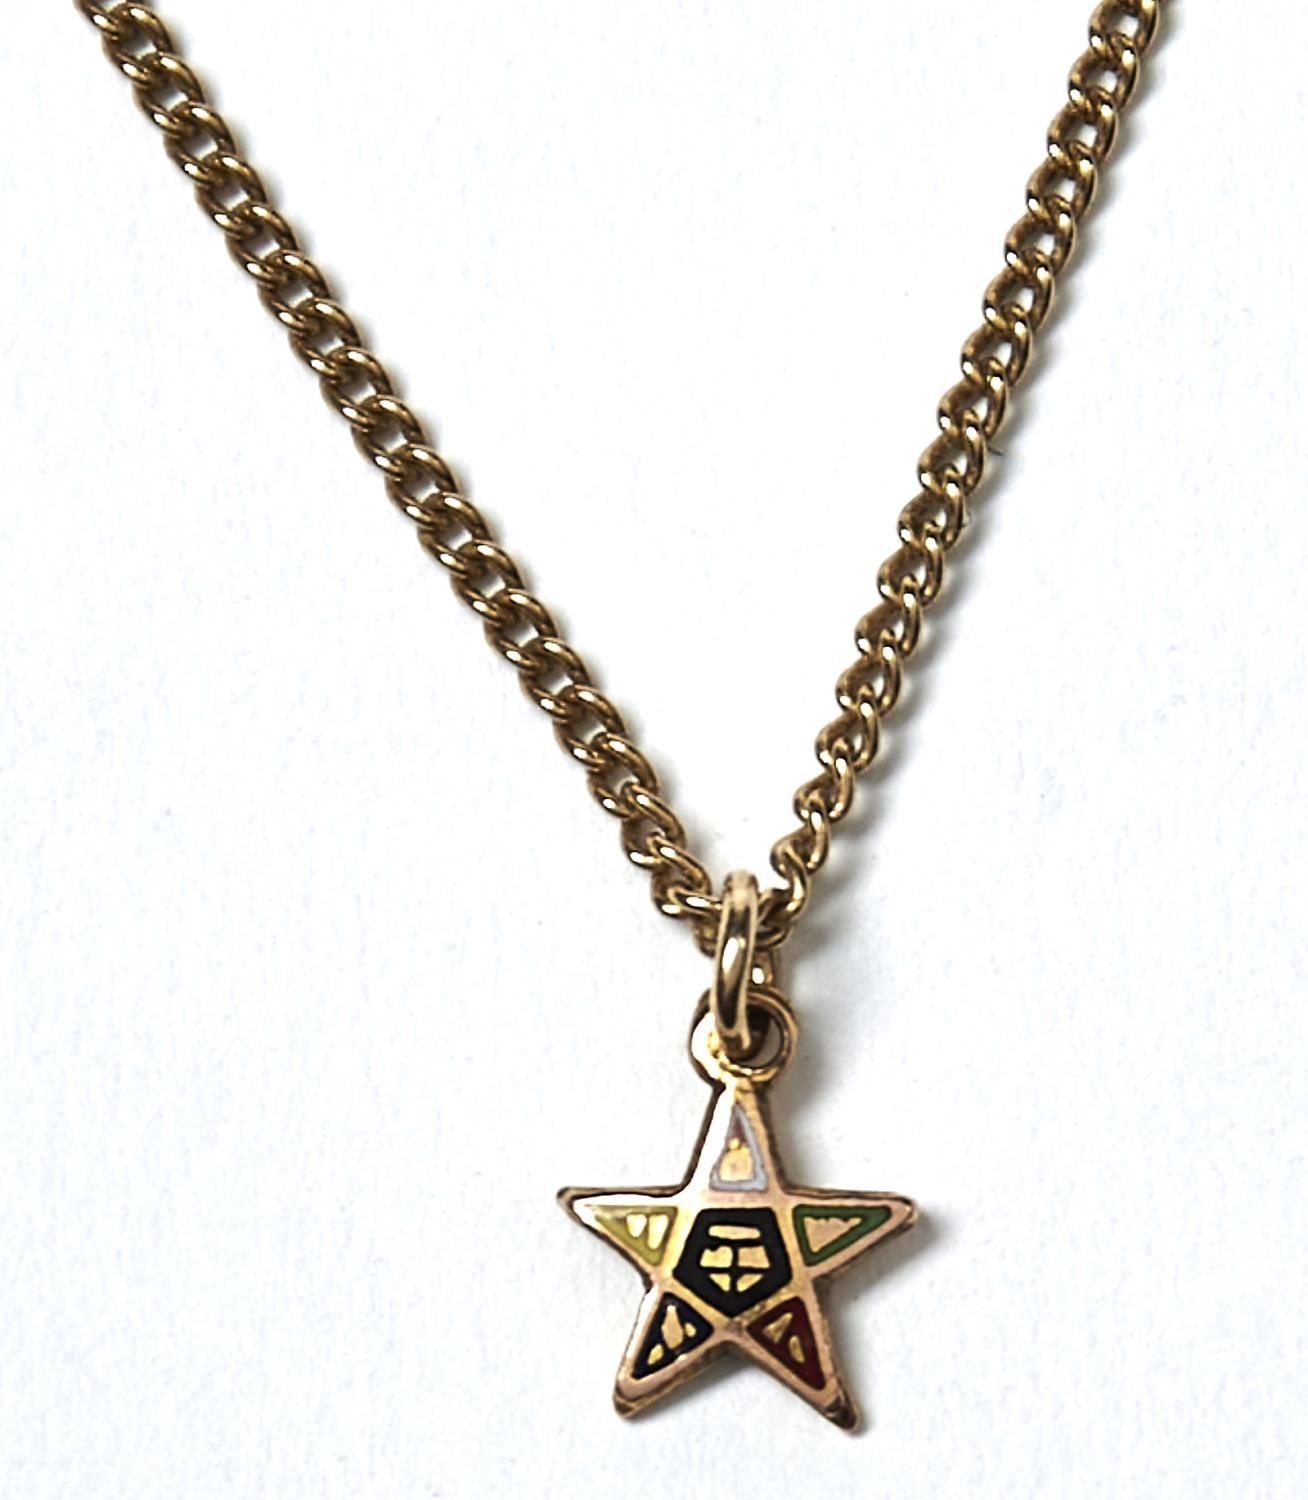 A GOLD NECKLET AND 9CT GOLD STAR CHARM, 54.5CM L, NECKLET MARKED 9K,  4.5G GOOD CONDITION